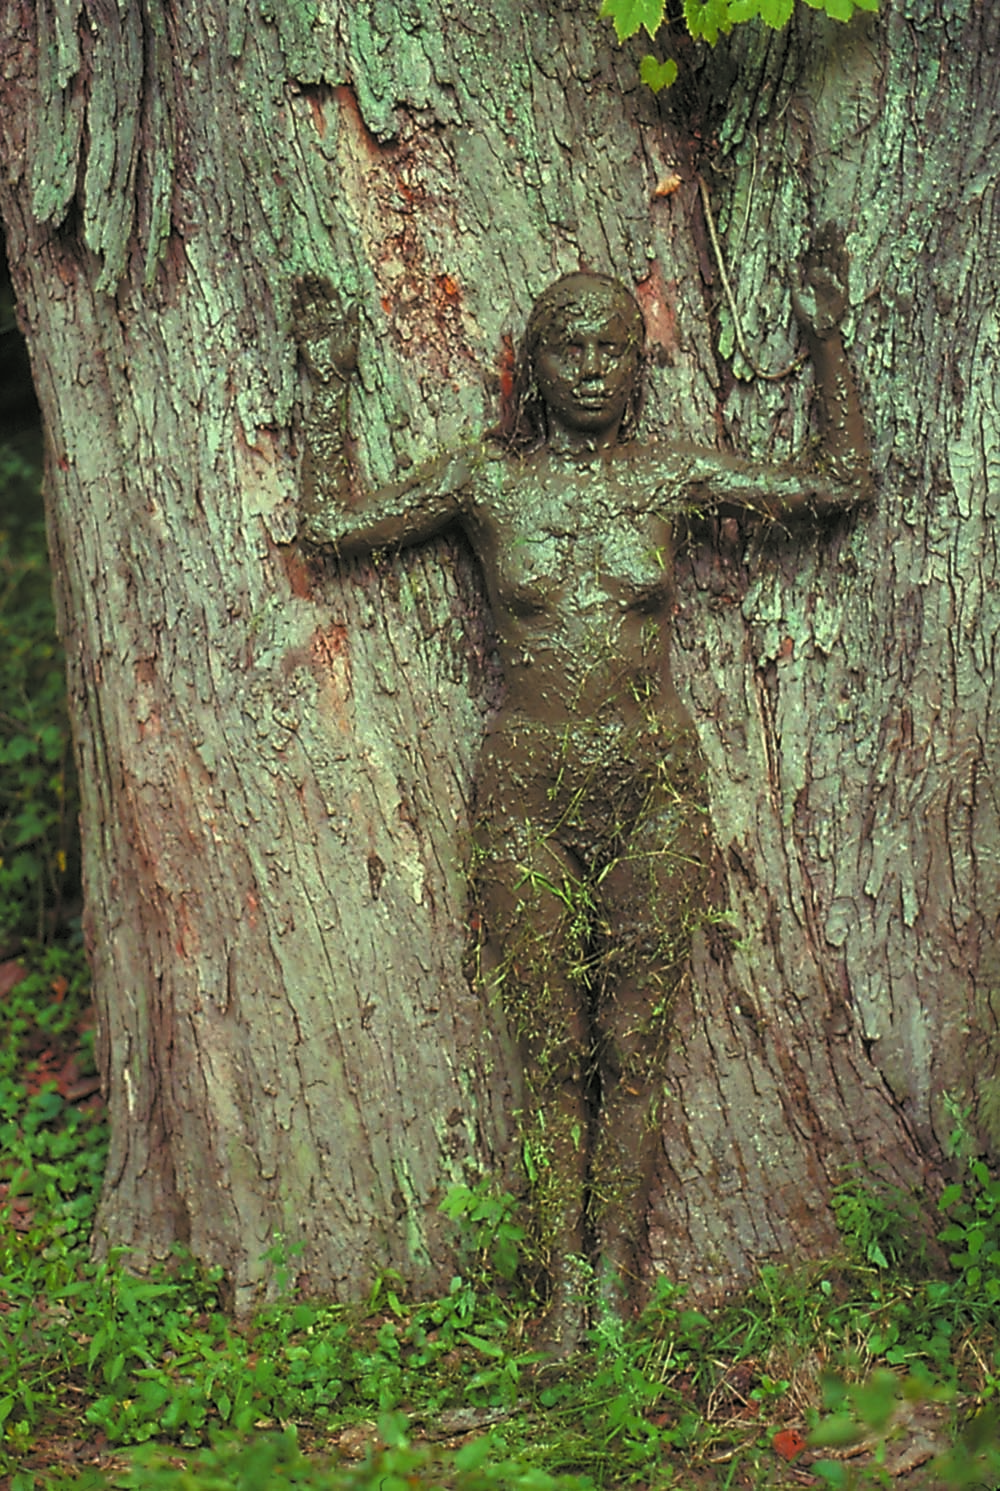 Arbol de la Vida (Tree of Life) (1976) by Ana Mendieta. Colour photograph, lifetime print, 50.8 x 33.7 cm